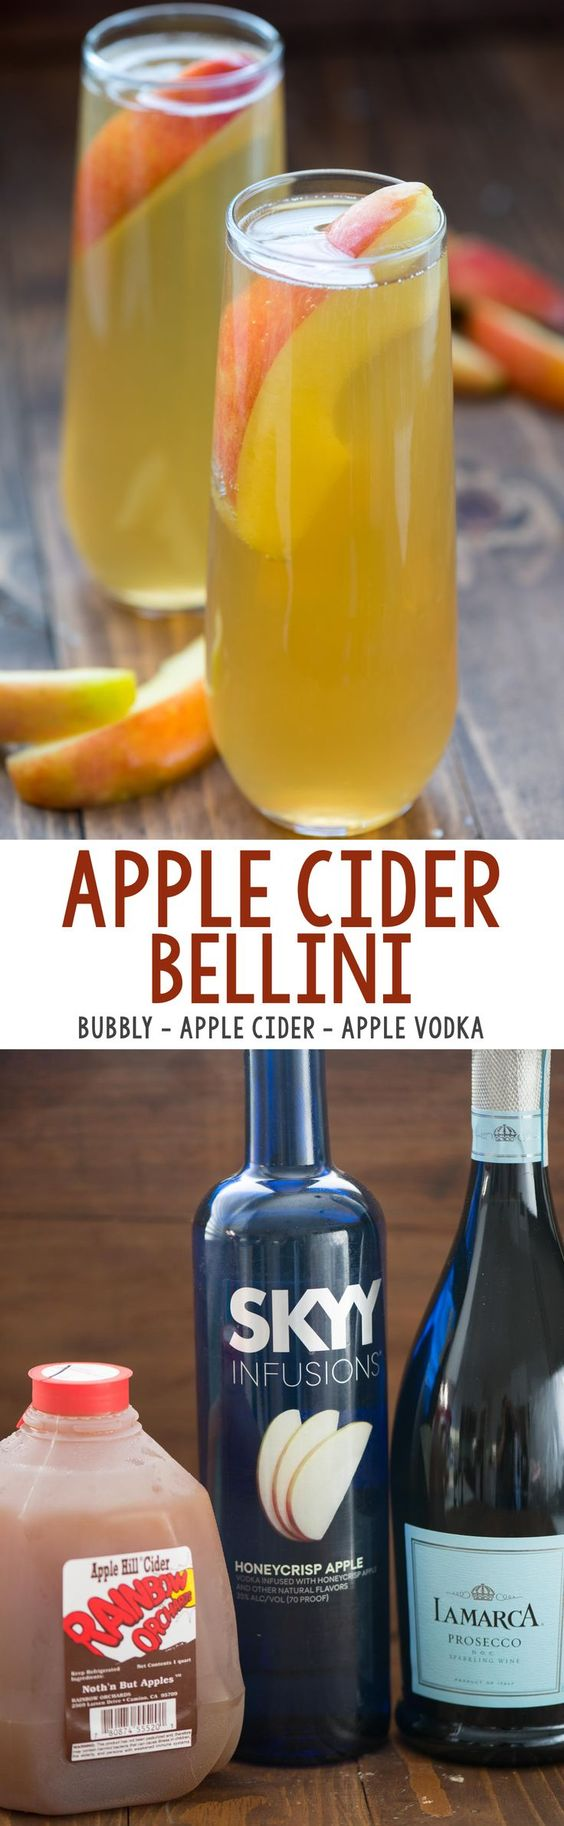 Apple Cider Bellini - only 3 easy ingredients to the perfect fall cocktail!: